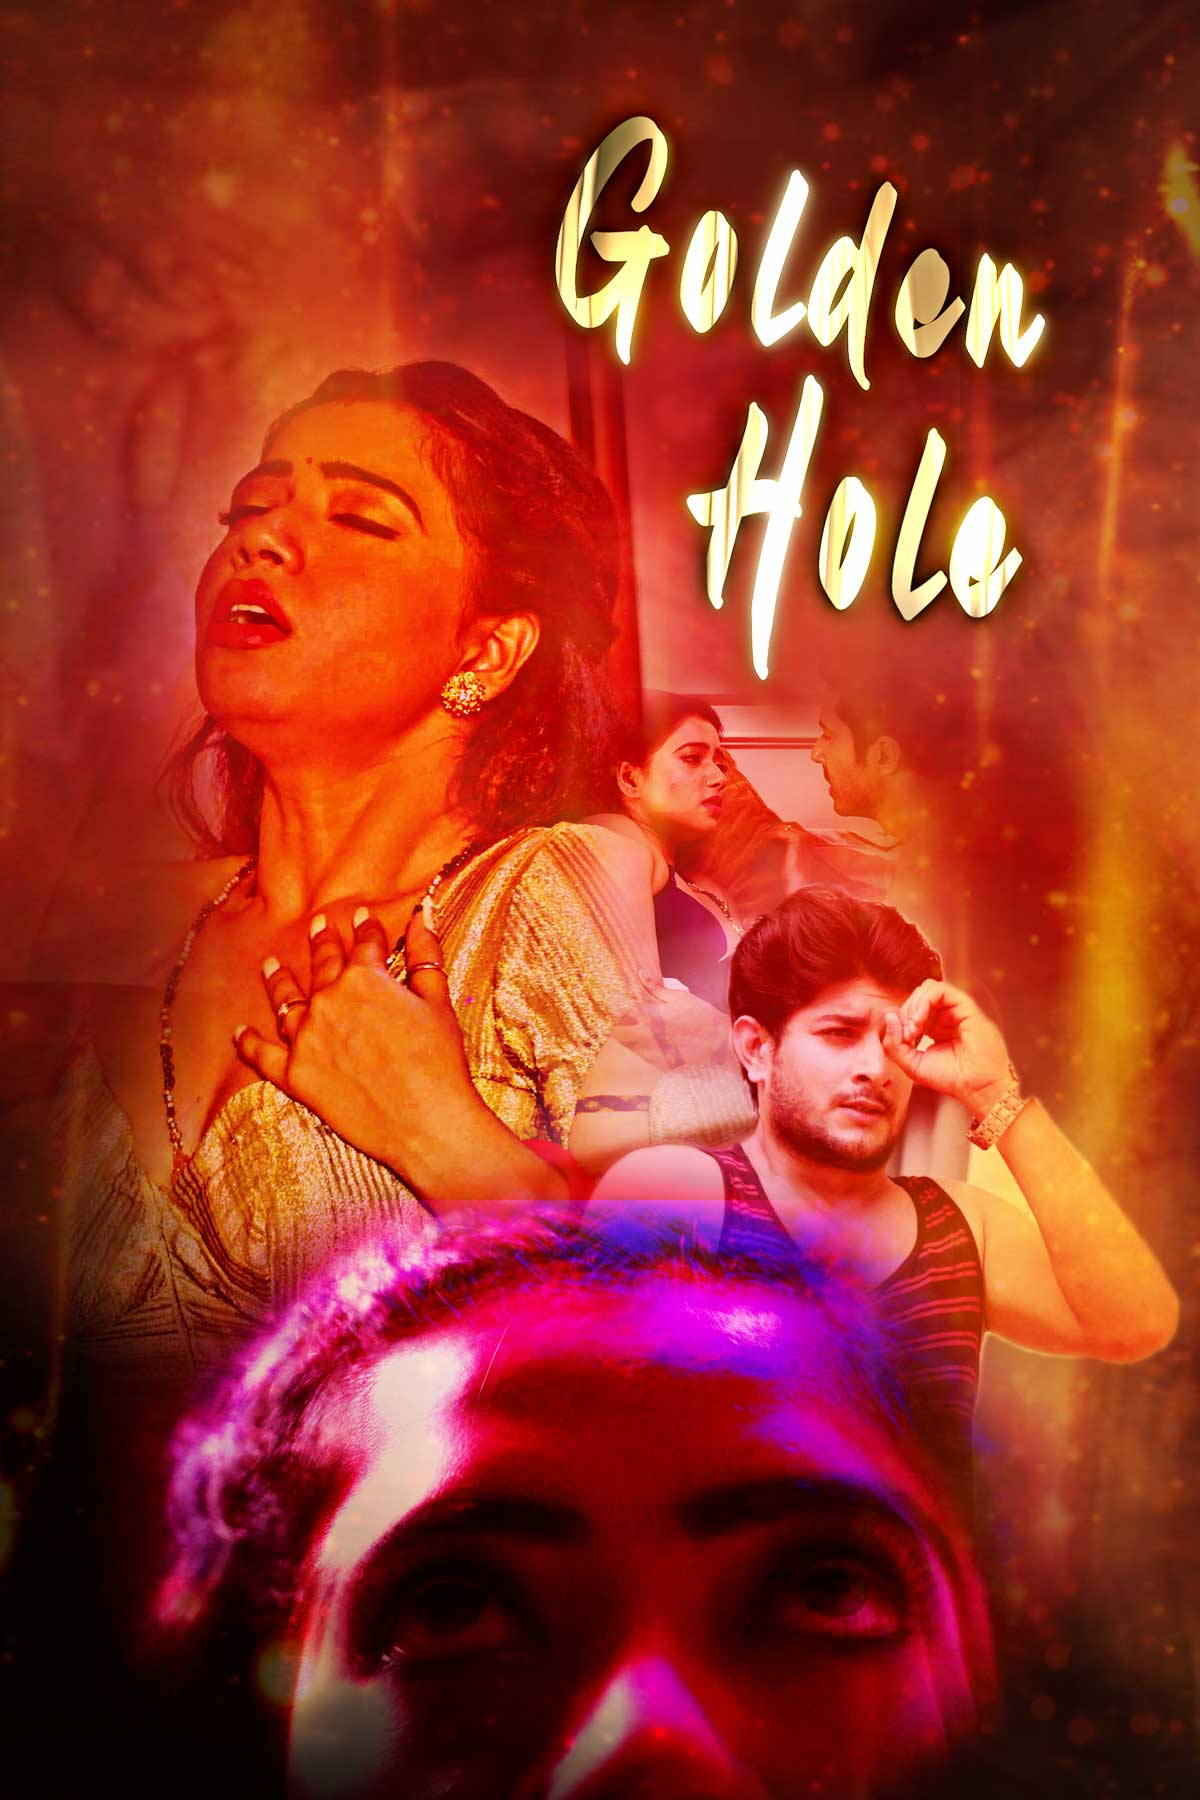 18+ Golden Hole 2020 S01 Hindi Kooku App Complete Web Series 720p HDRip 700MB *Full Hot*